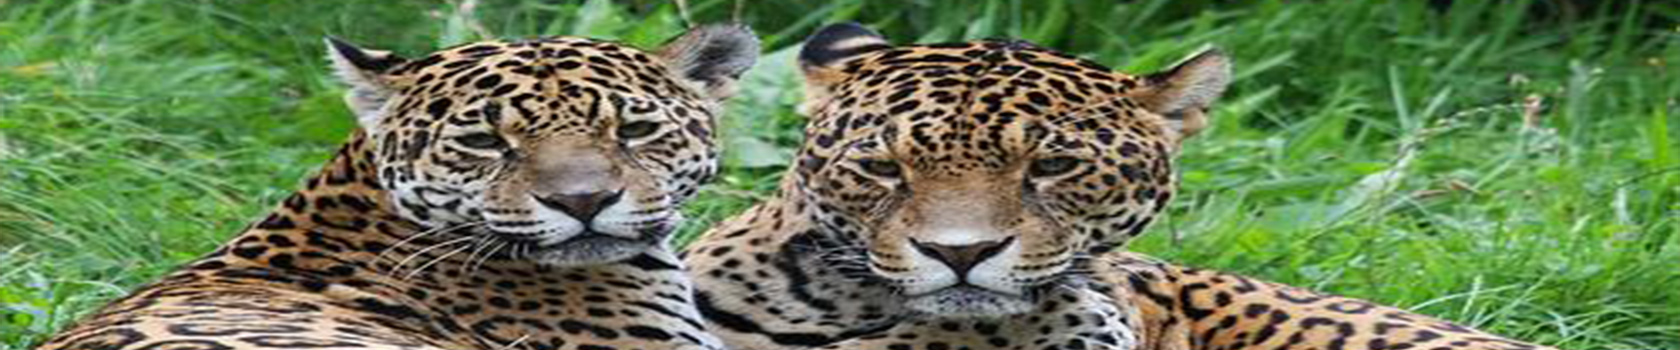 Tambopata Expeditions Reserved and Sandoval Lake - Amazon Wildlife